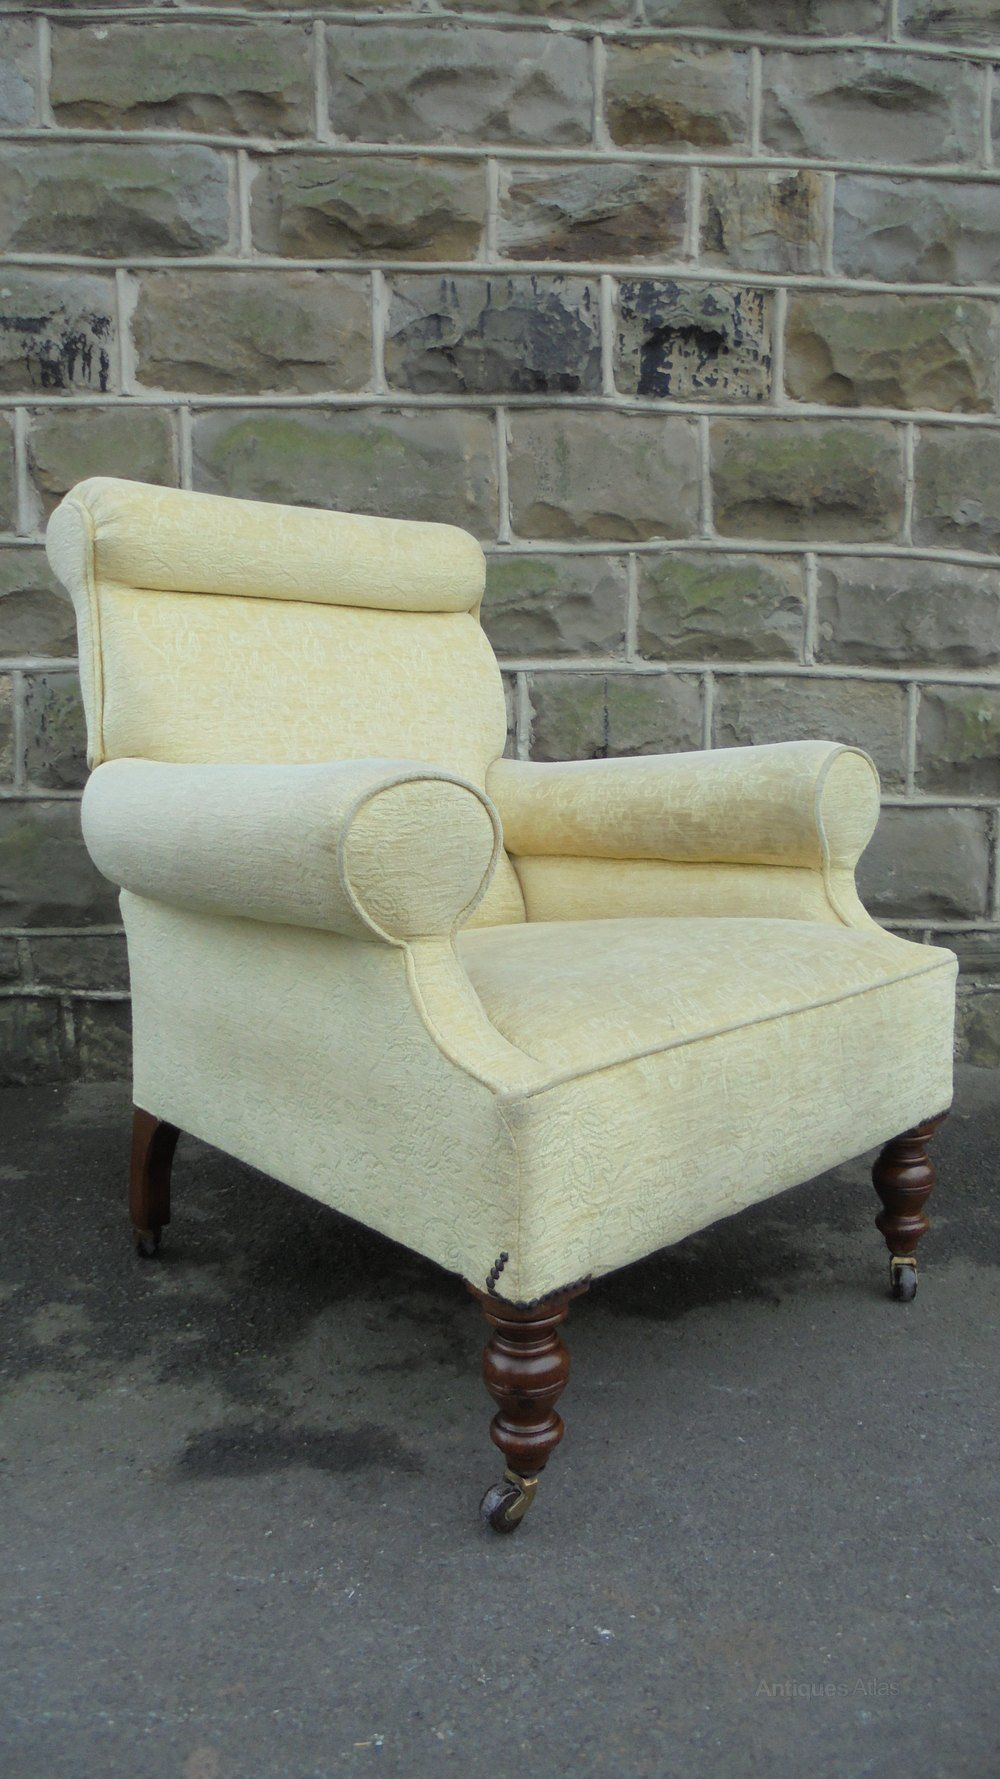 Antique English Upholstered Armchair Upholstered Arm Chair